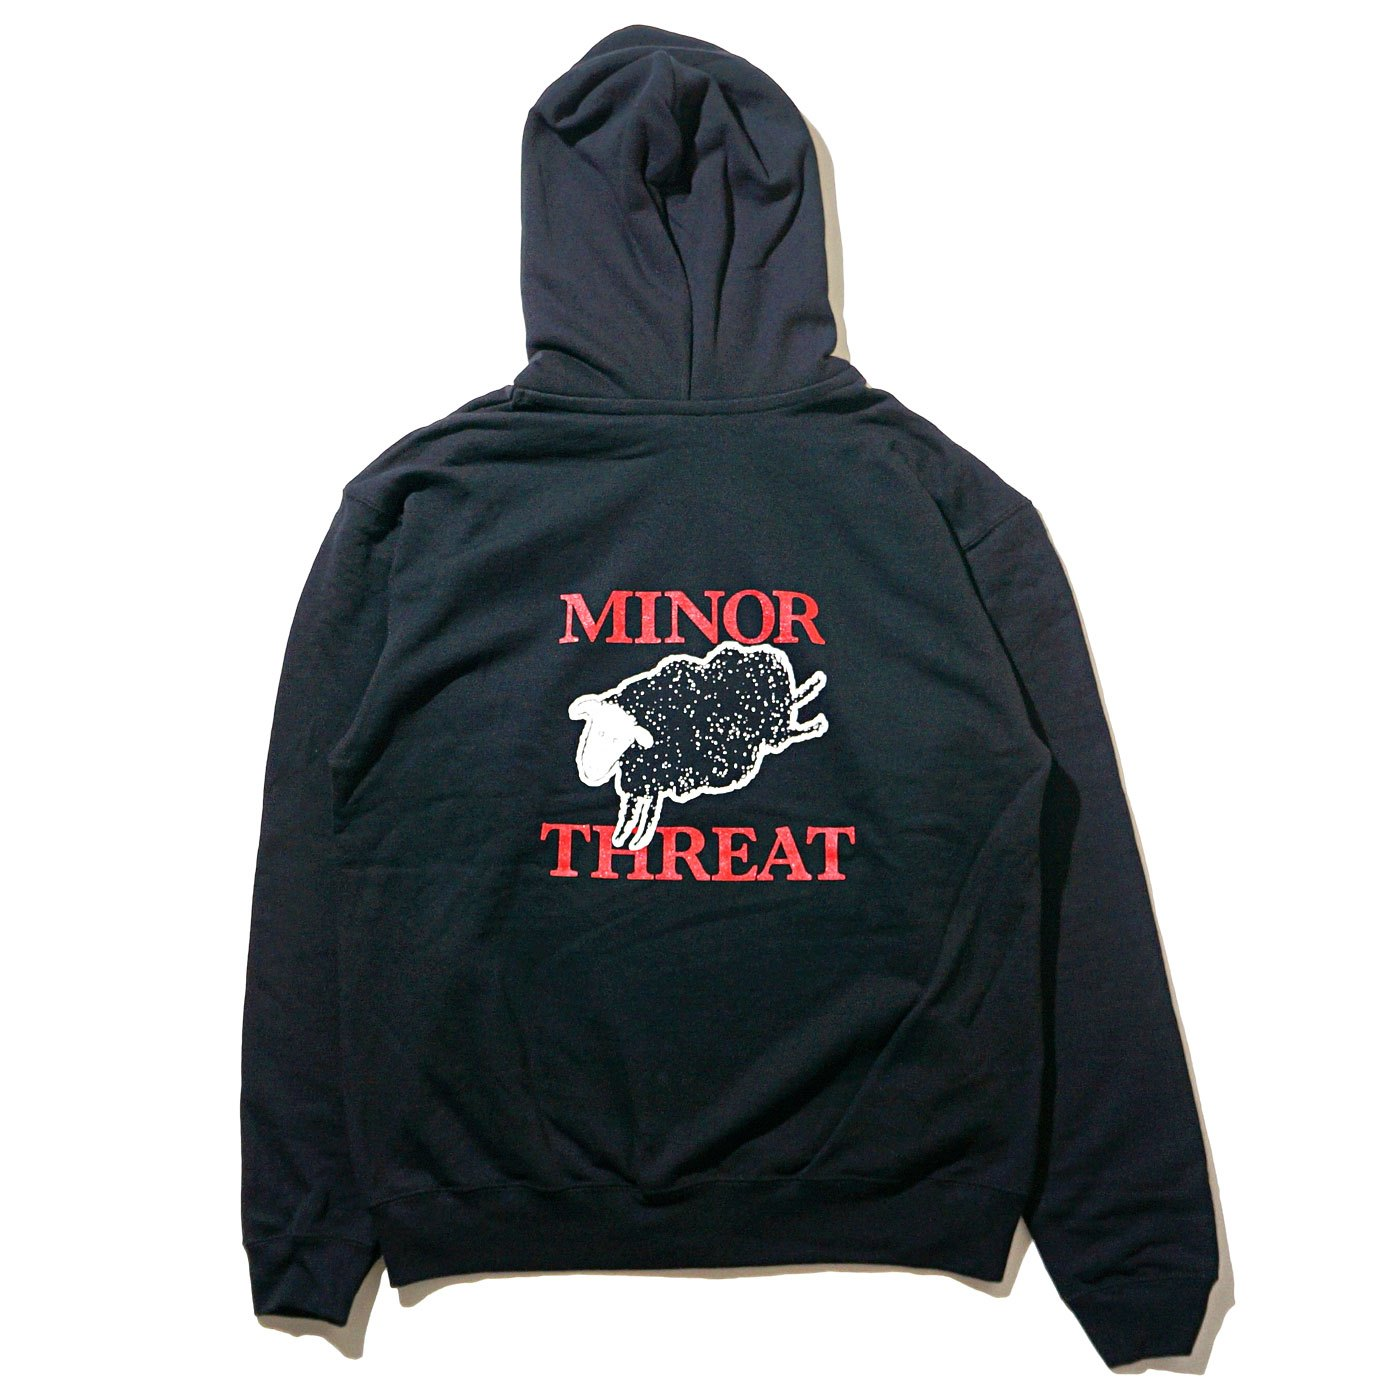 MINOR THREAT ジップアップパーカー Out Of Step